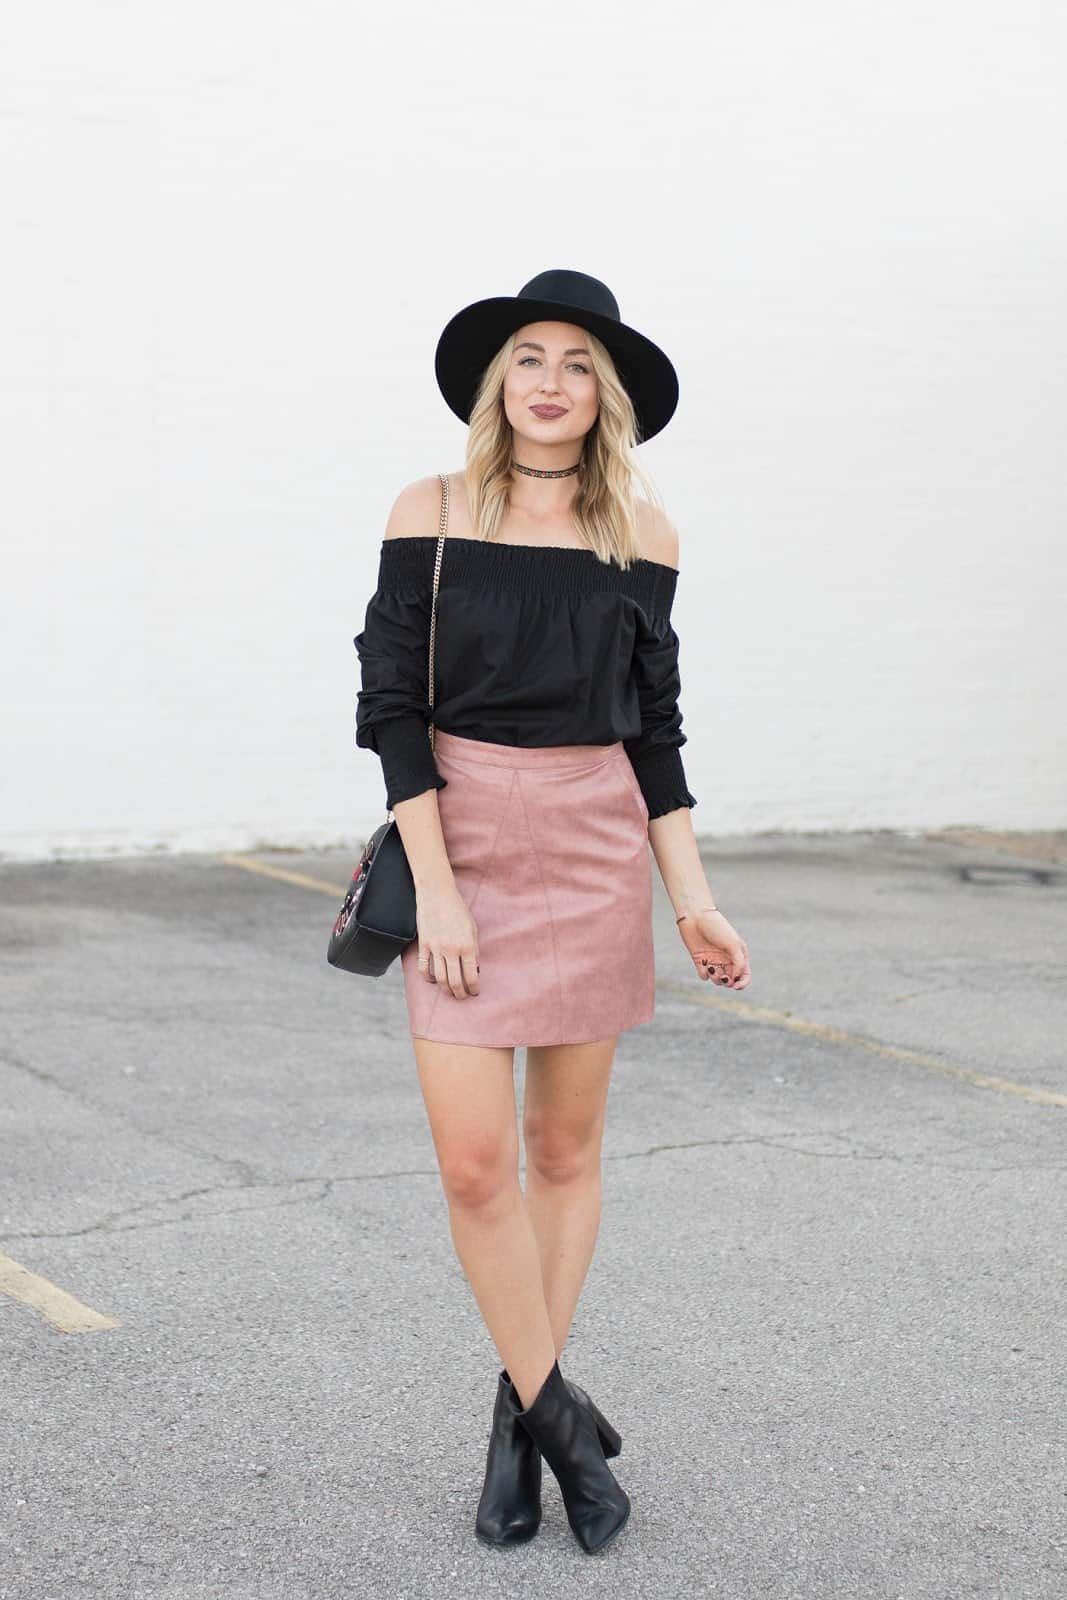 Pleather skirt and blouse